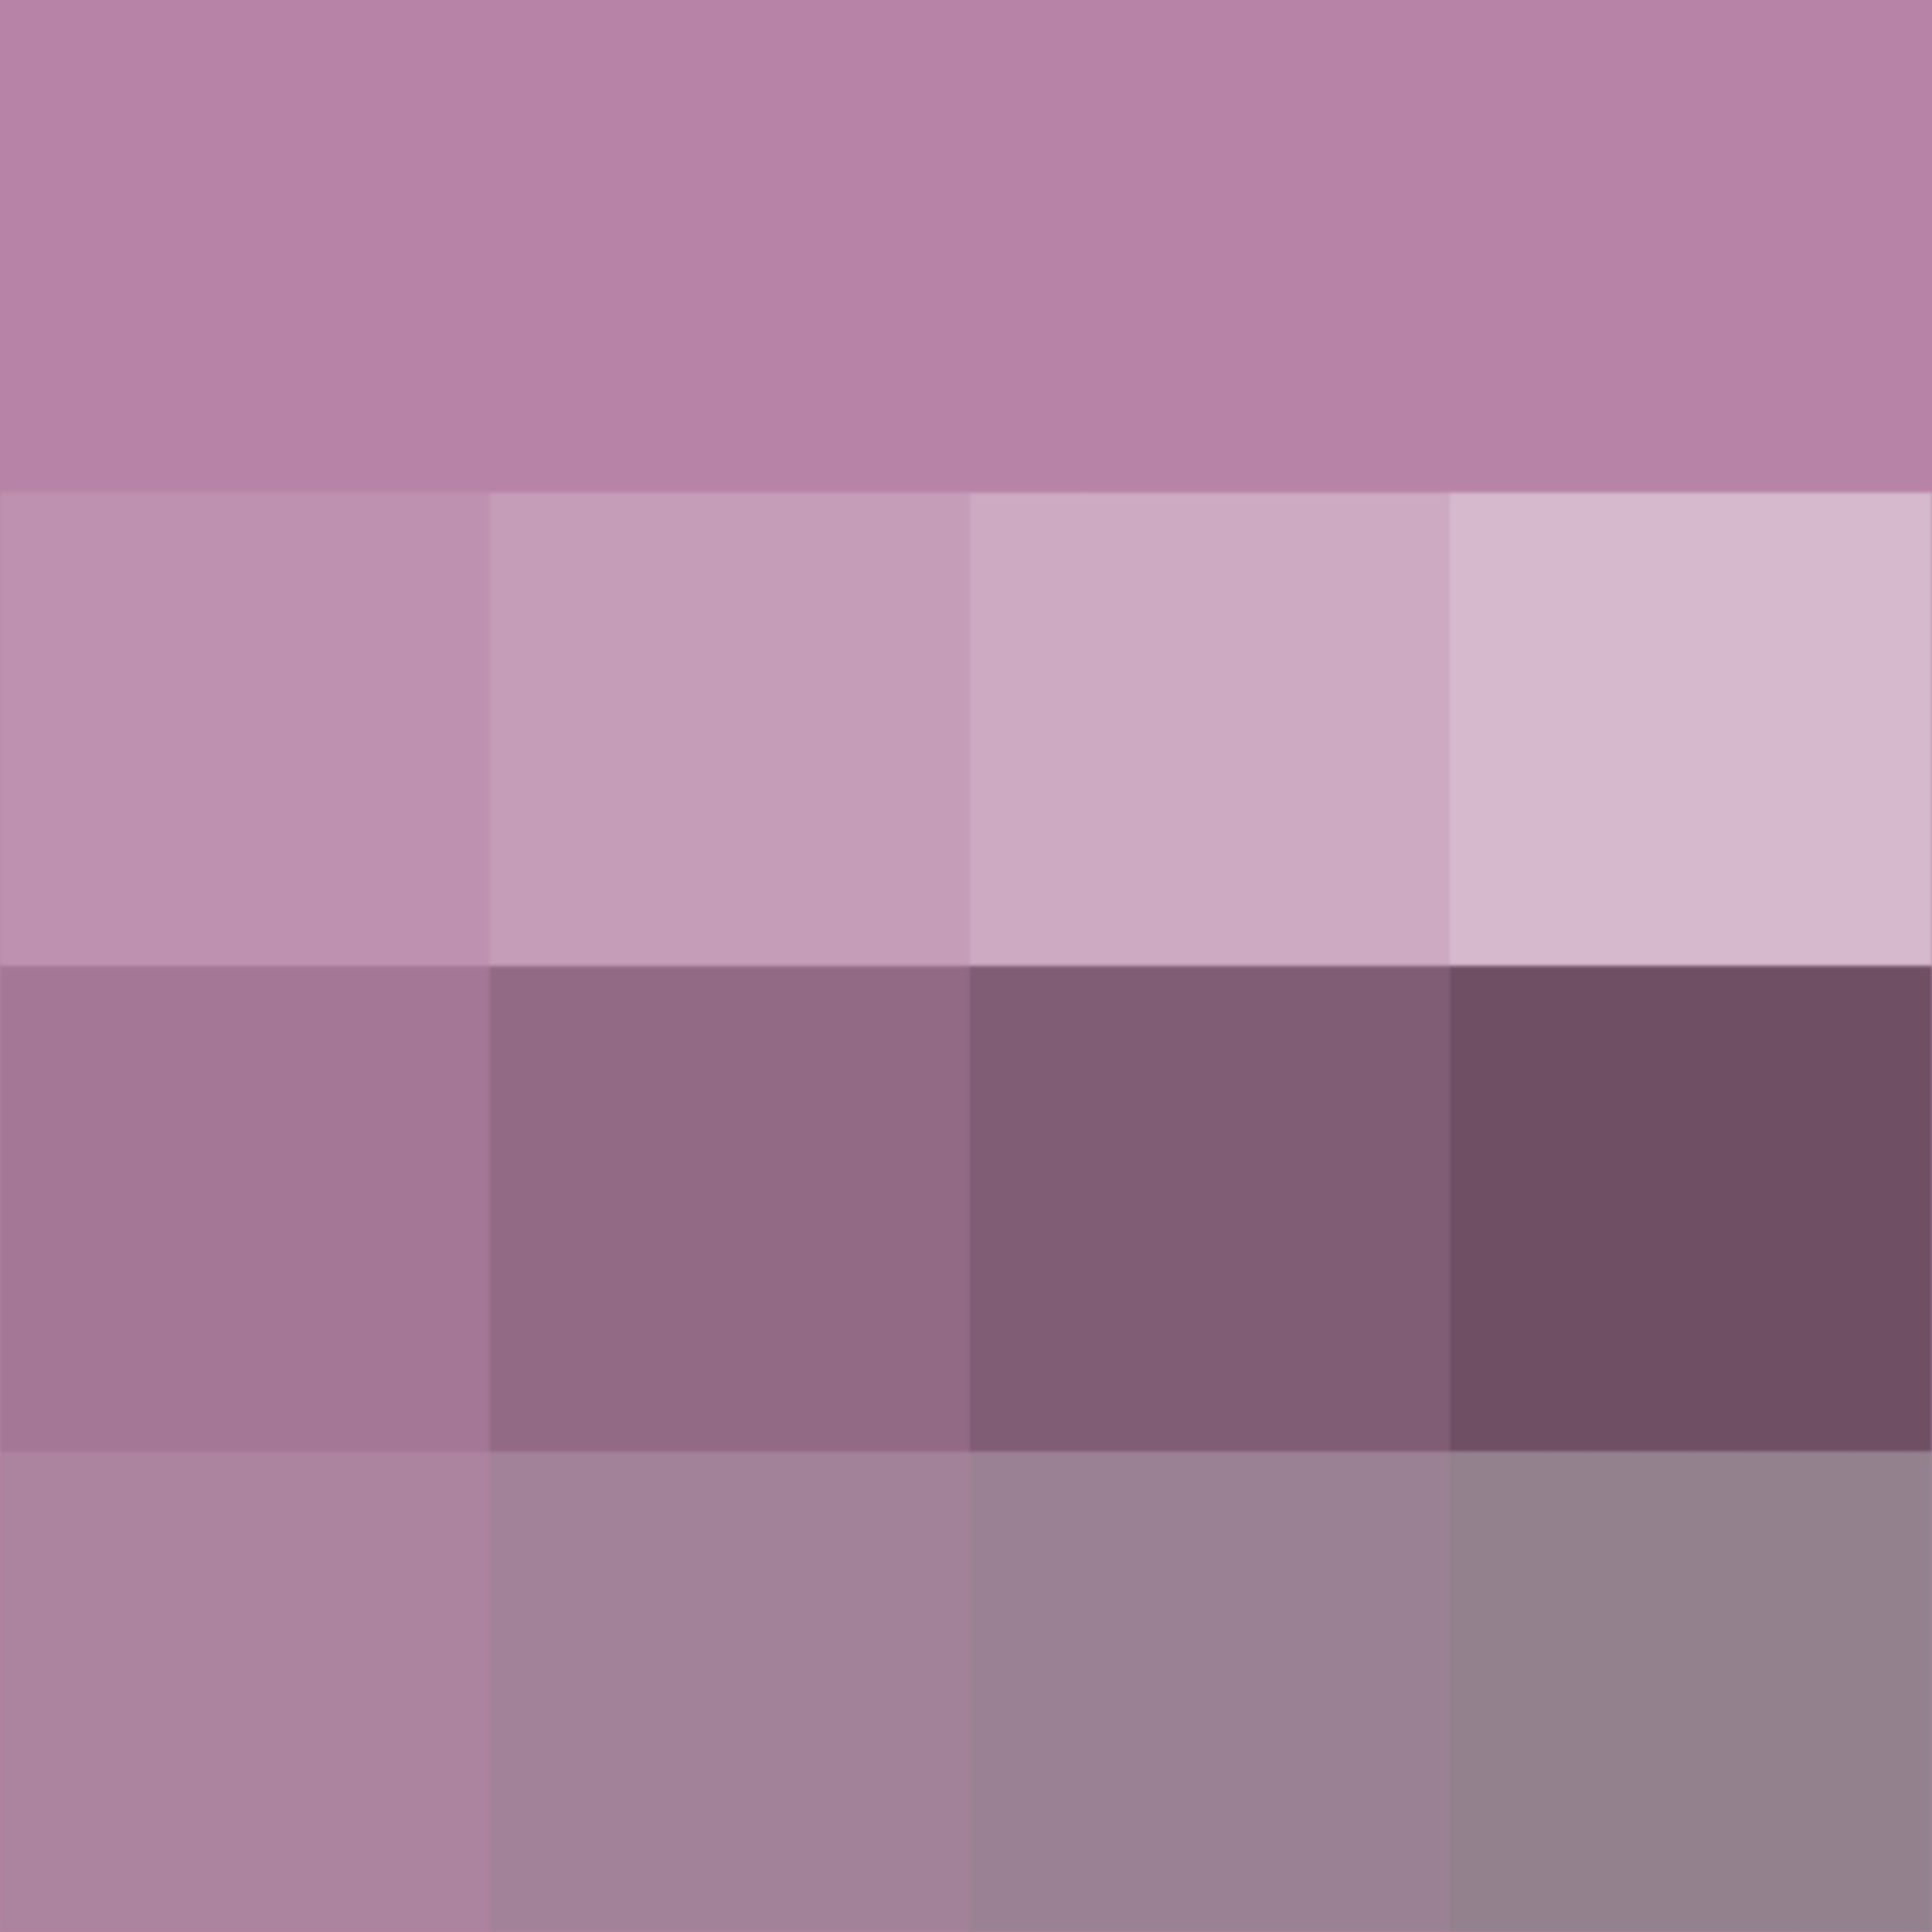 Farbe Mauve Taupe Opera #mauve Shades (hue) ( Pure Color ) With Tints (hue + White), Shades (hue + Black) And T… | Soft Summer Palette, Soft Summer Colors, Soft Summer Color Palette